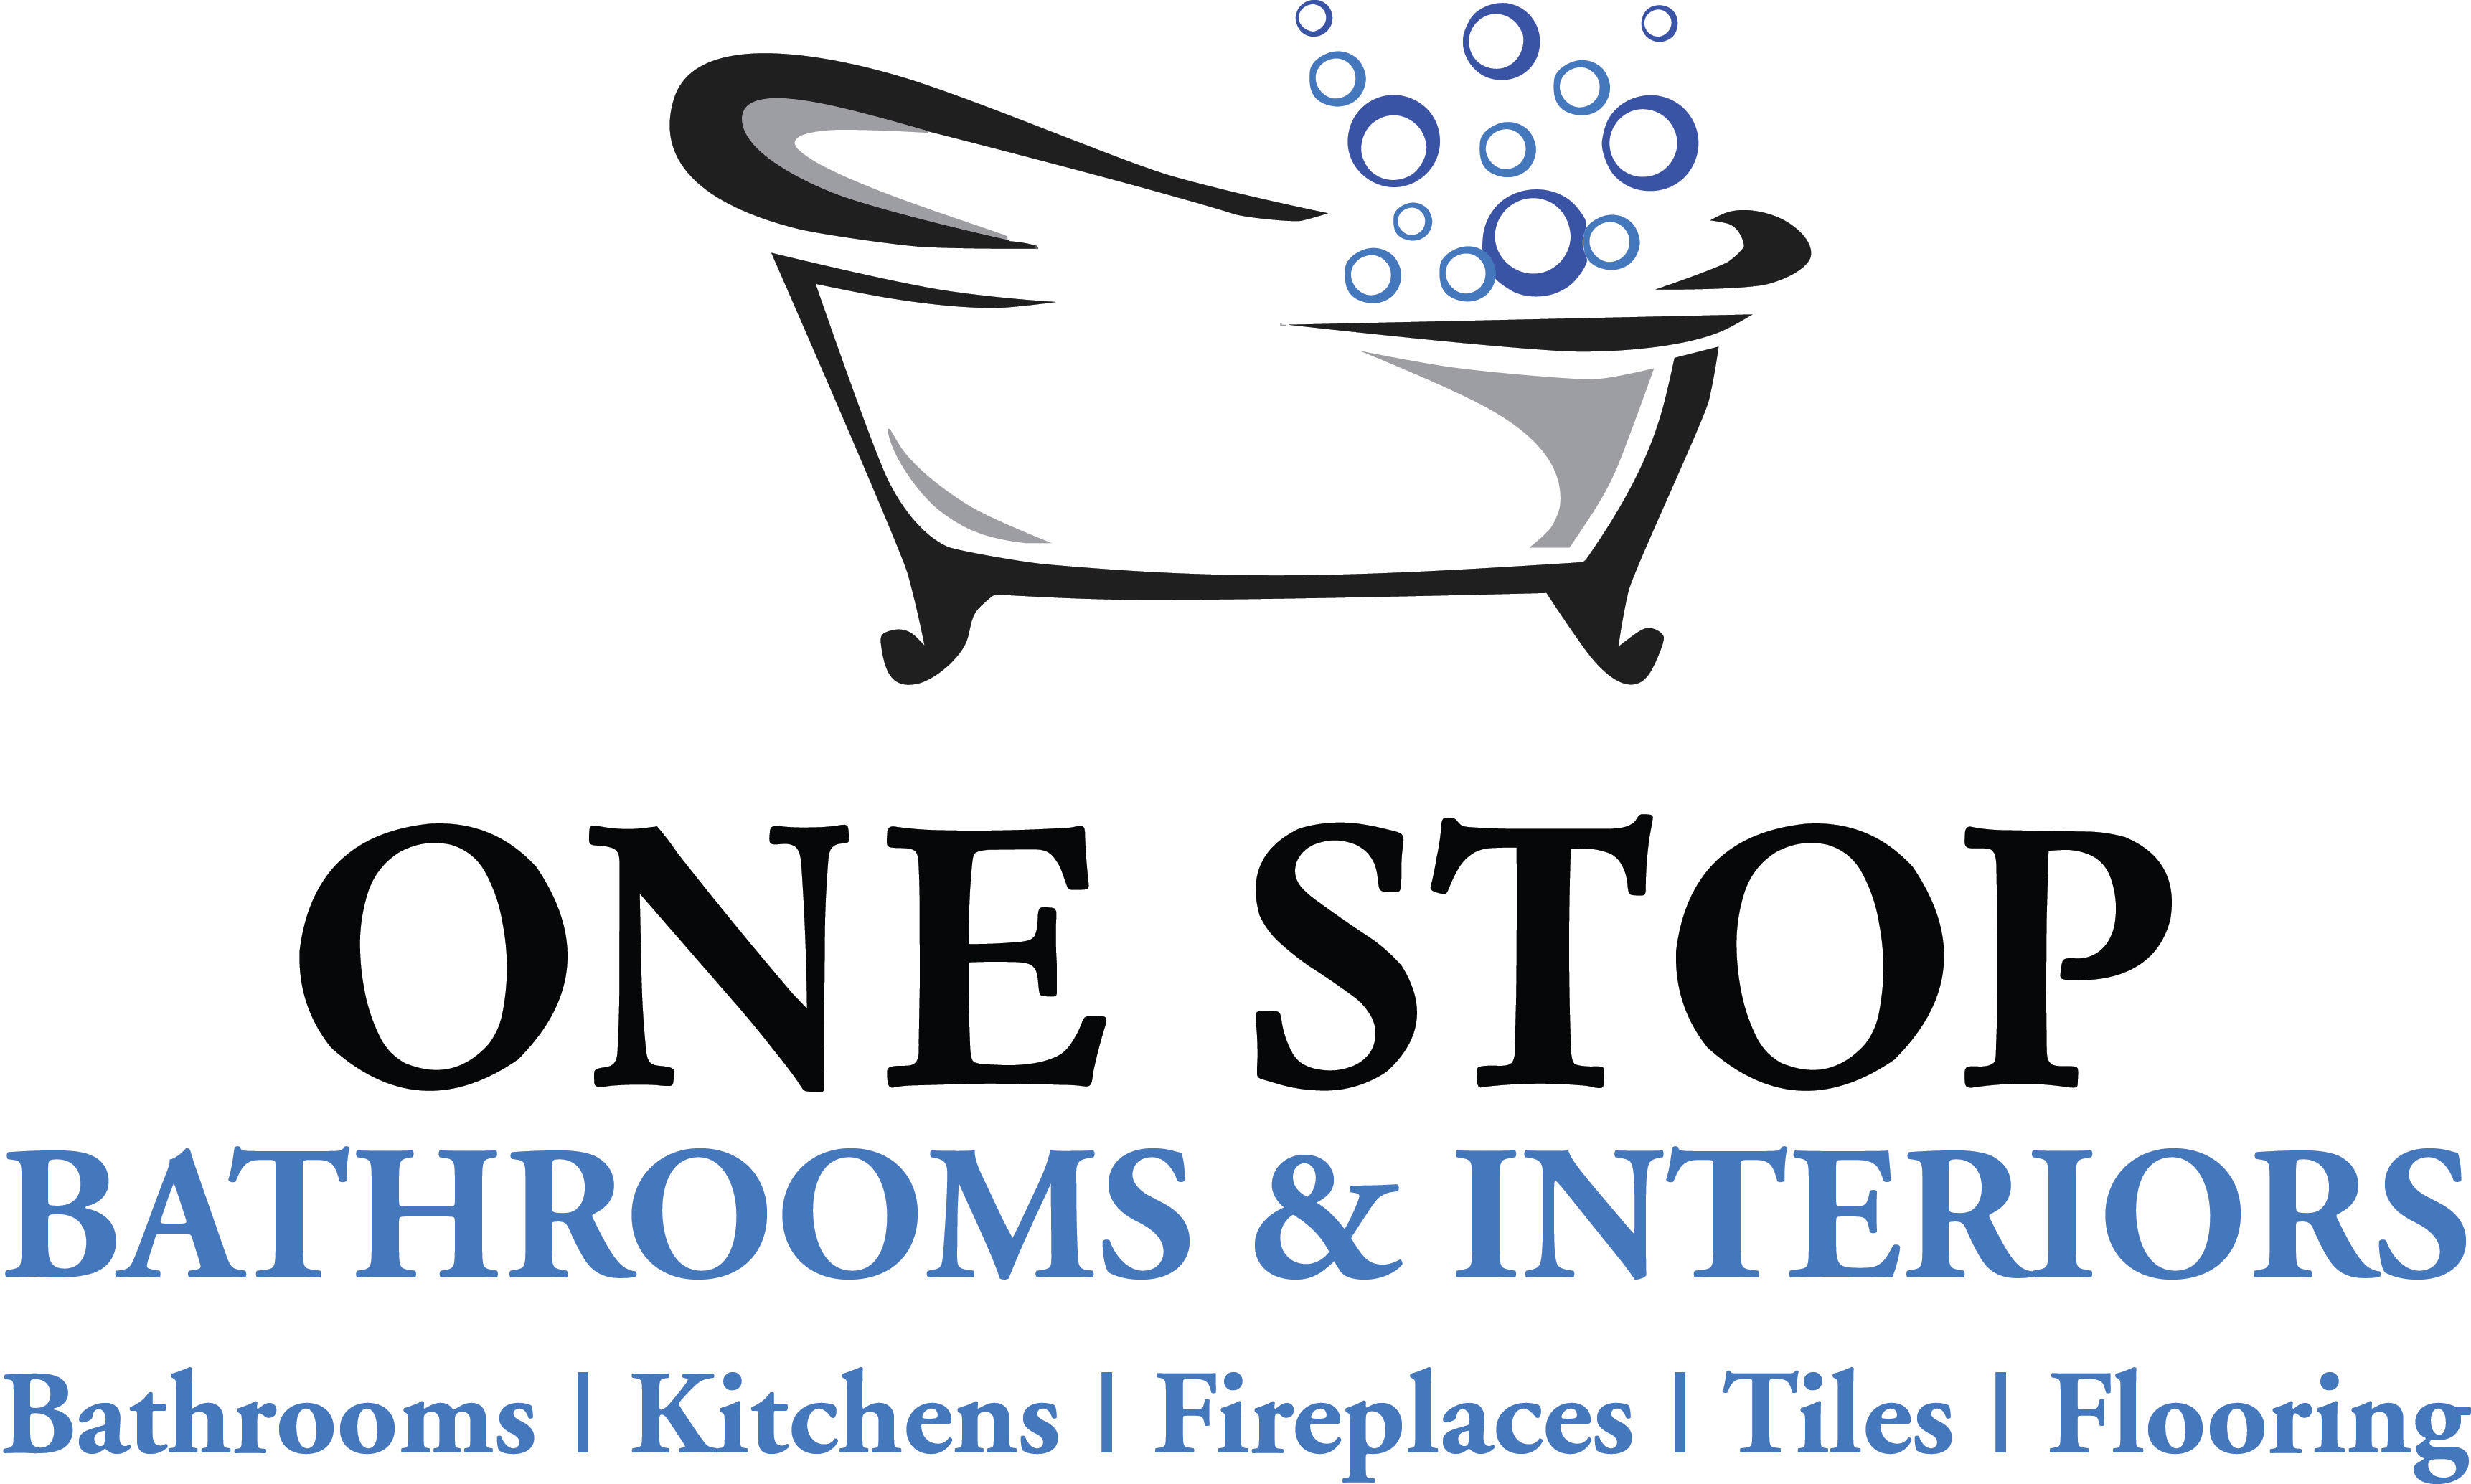 One stop logo workington